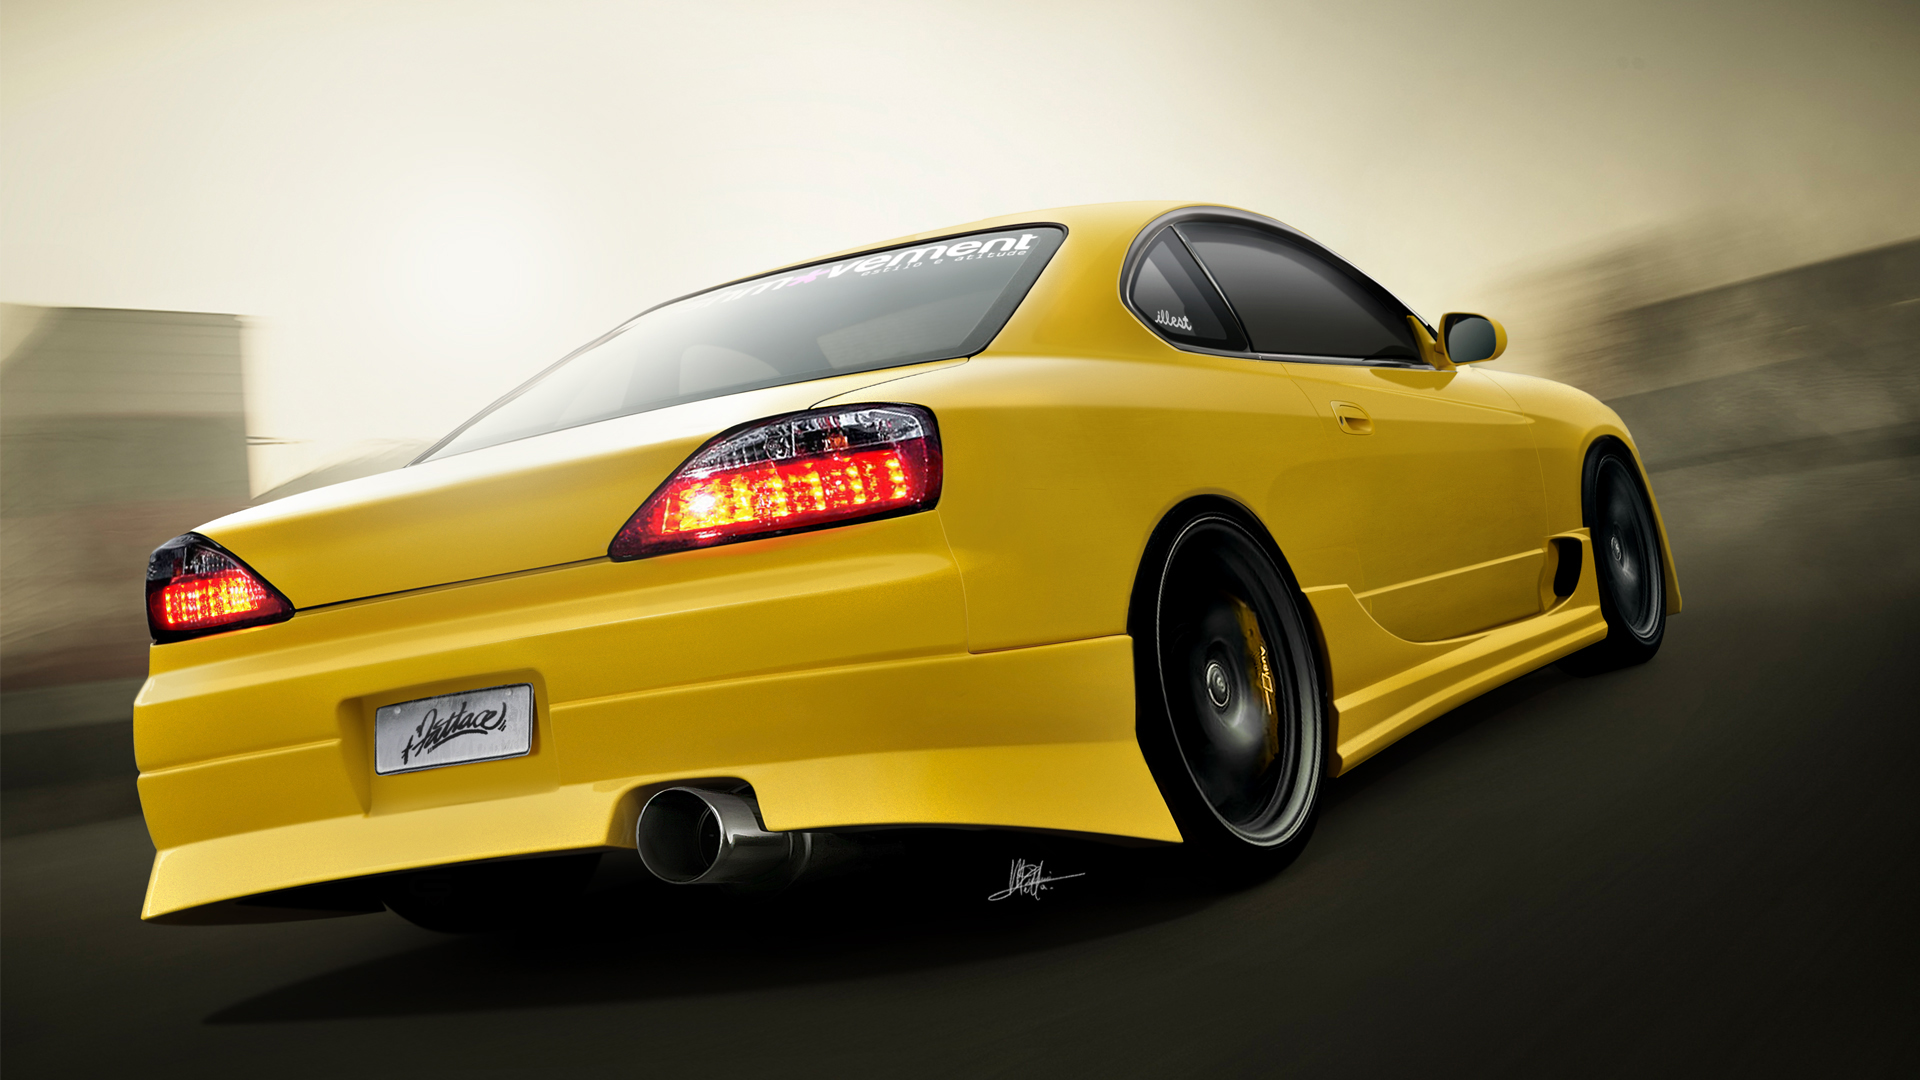 s15 wallpaper - photo #19